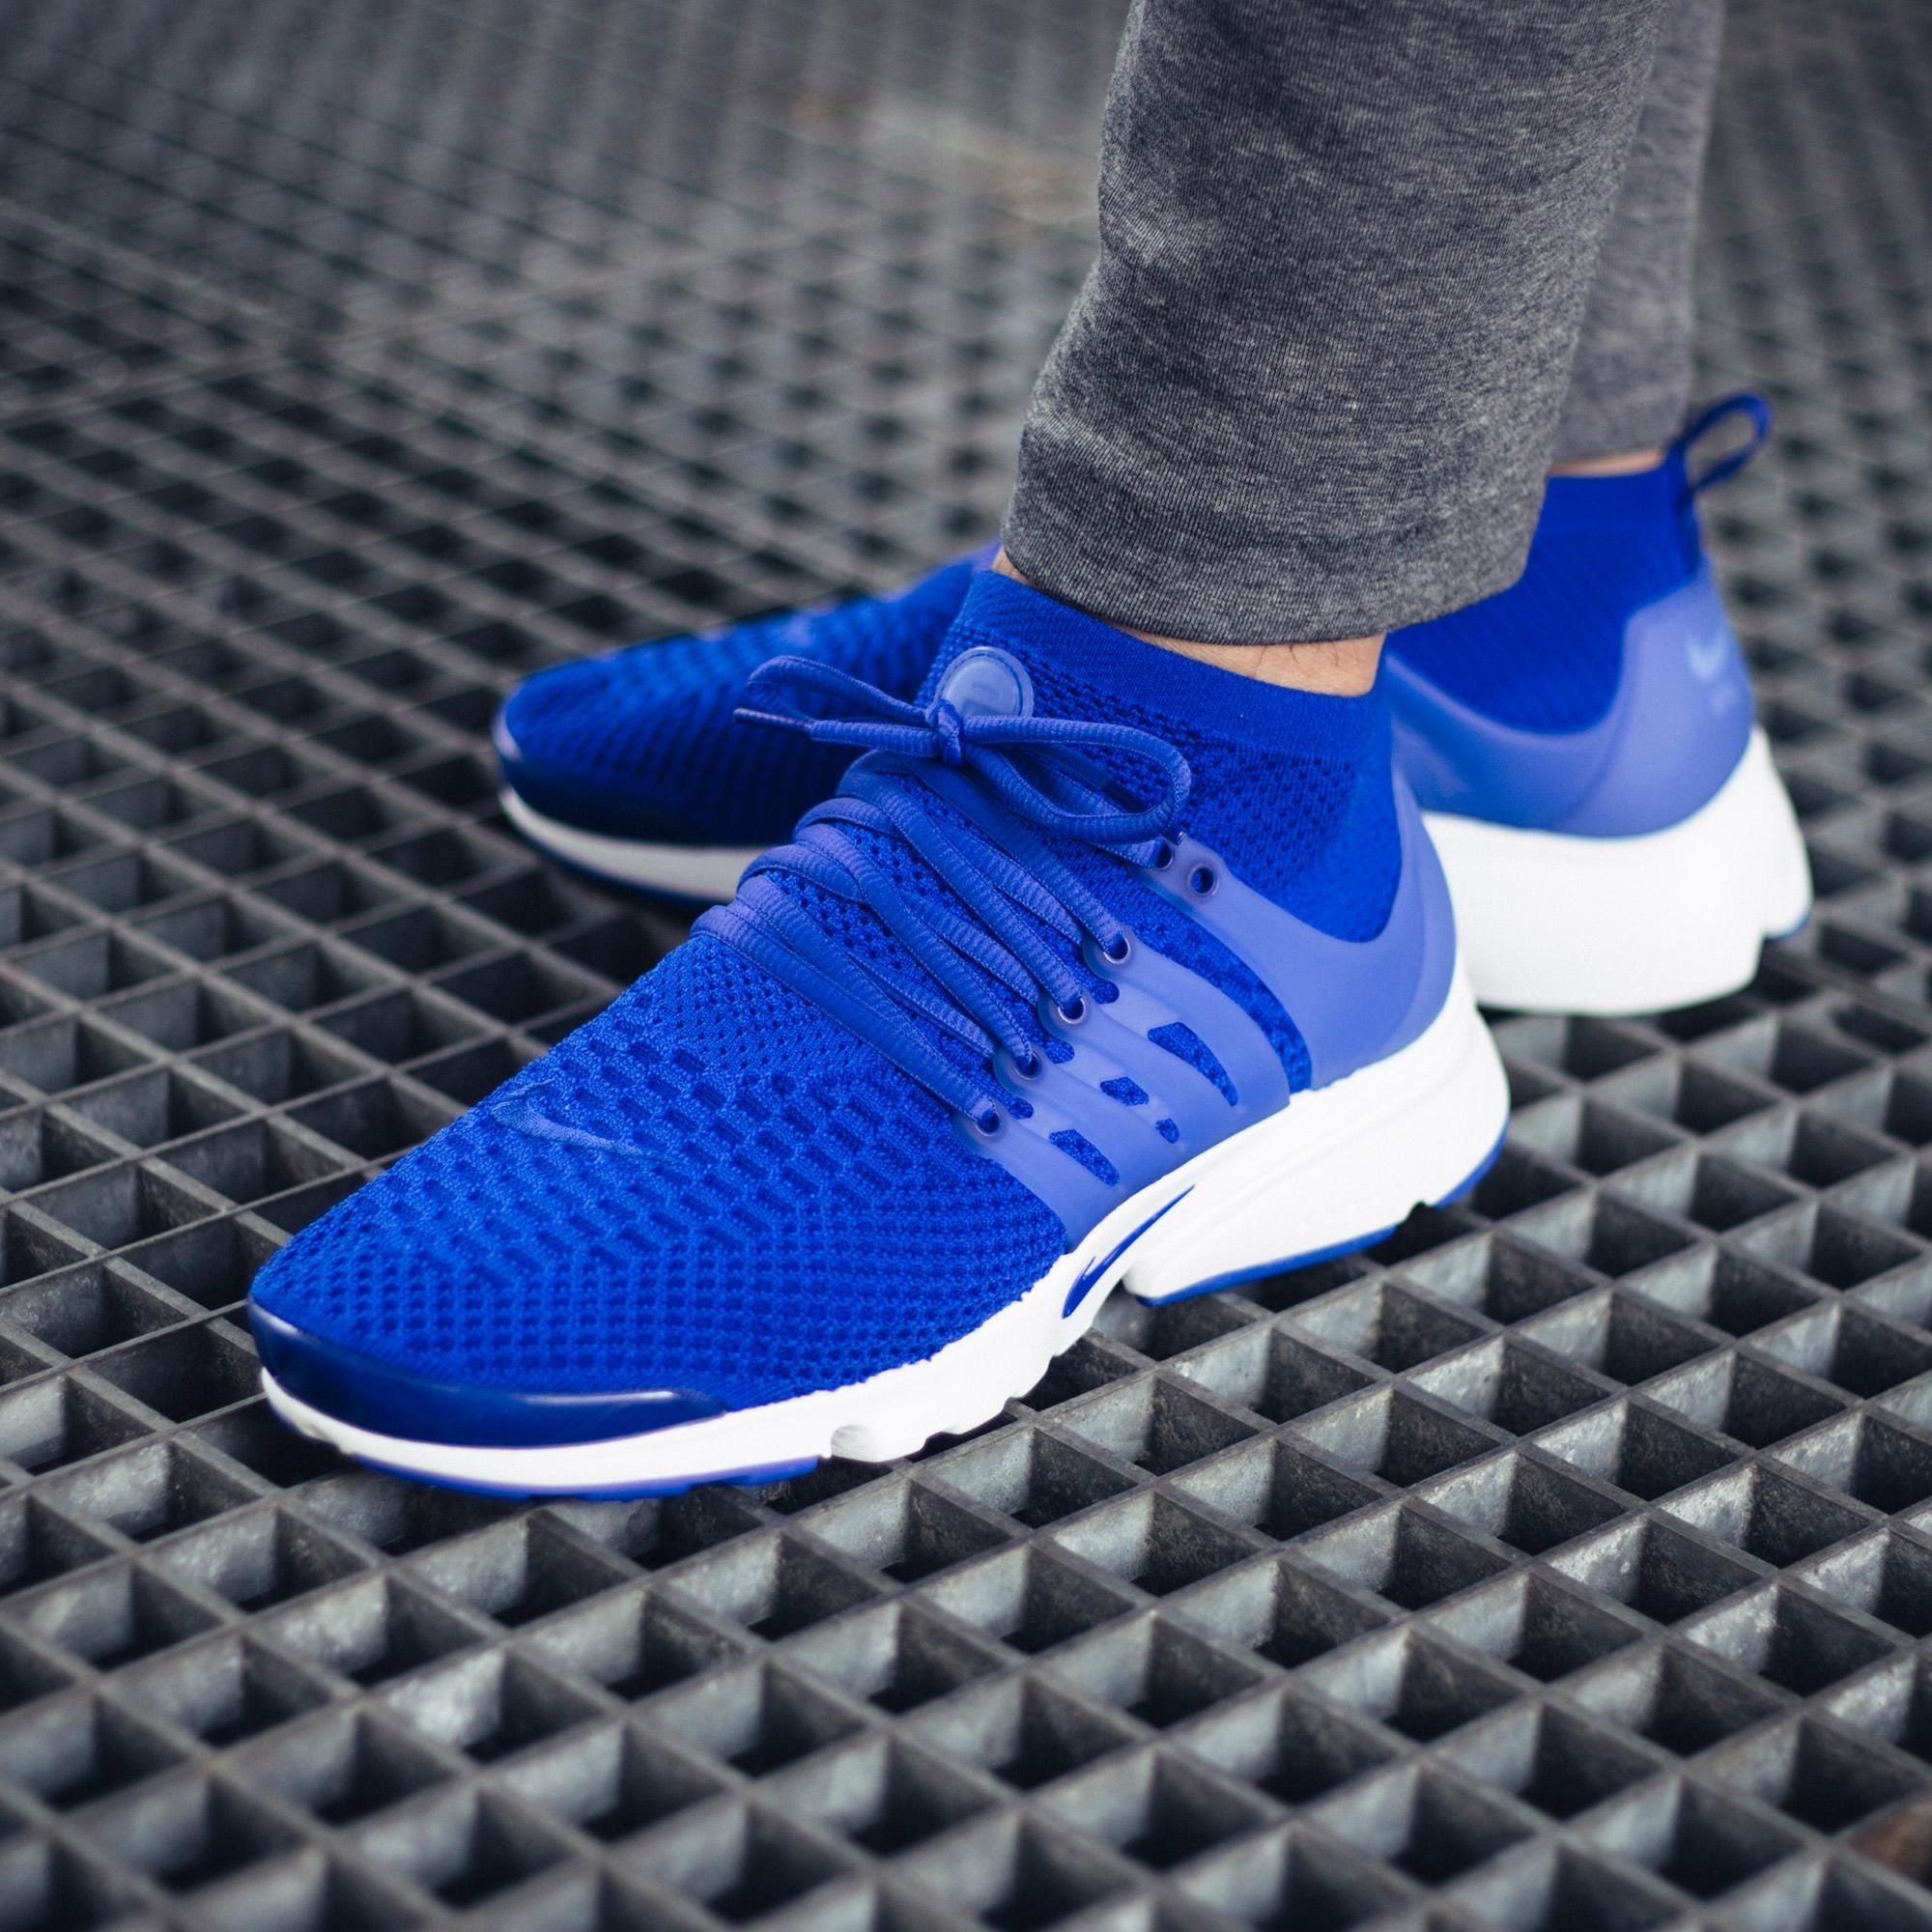 Keep It Royal With The Nike Air Presto Flyknit Ultra Racer Blue •  KicksOnFire.com